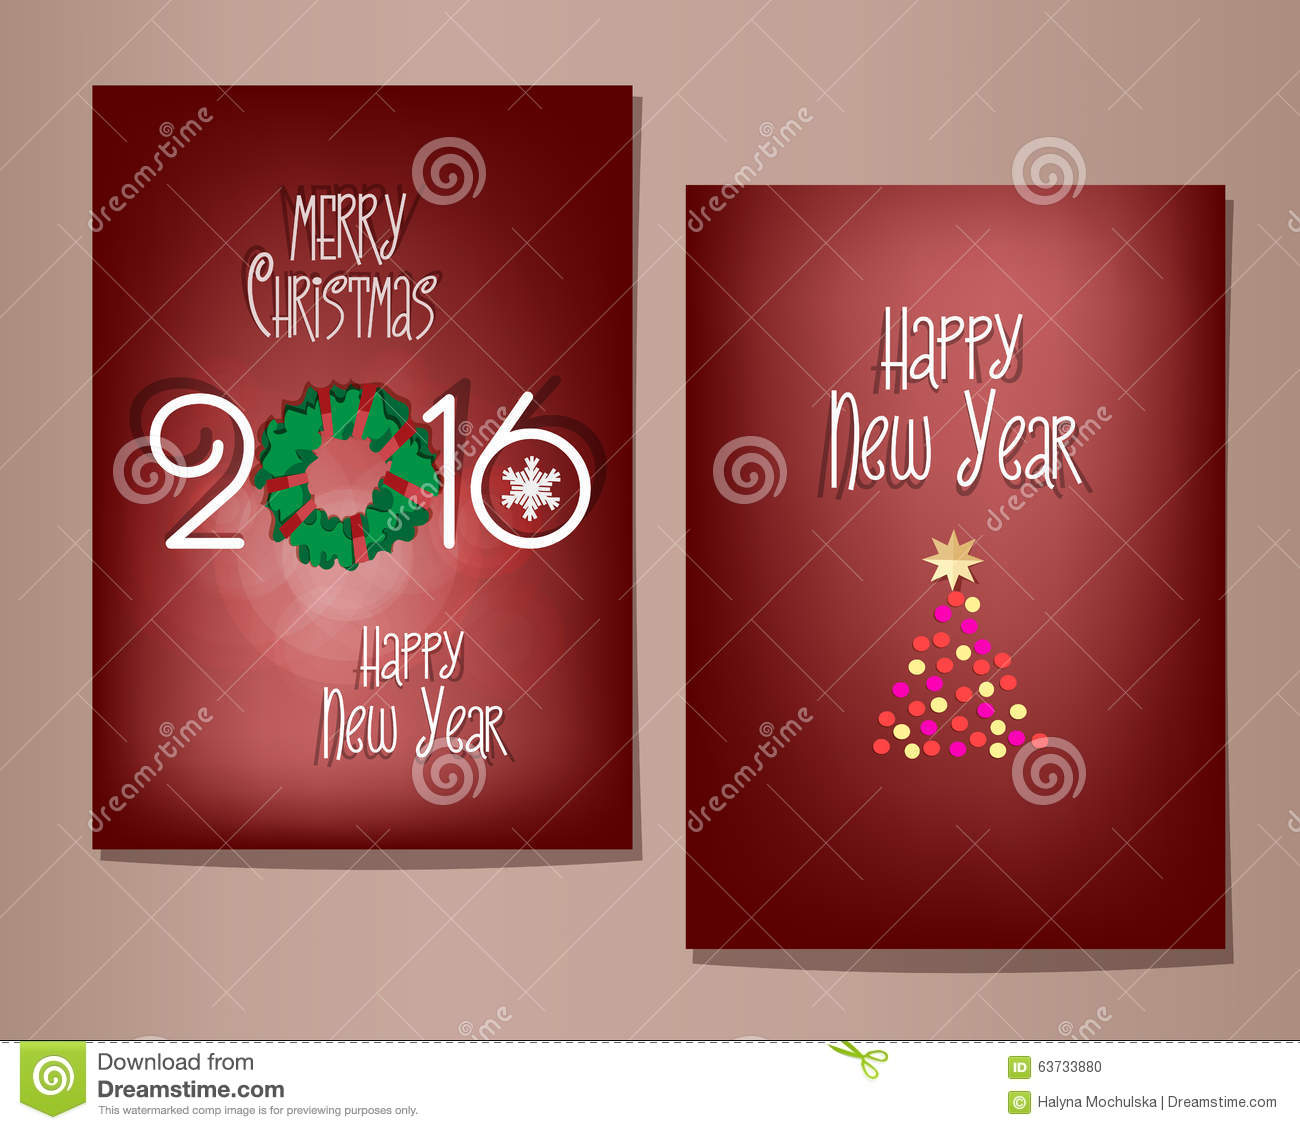 Christmas And Happy New Year Greeting Cards Set. Stock Illustration ...